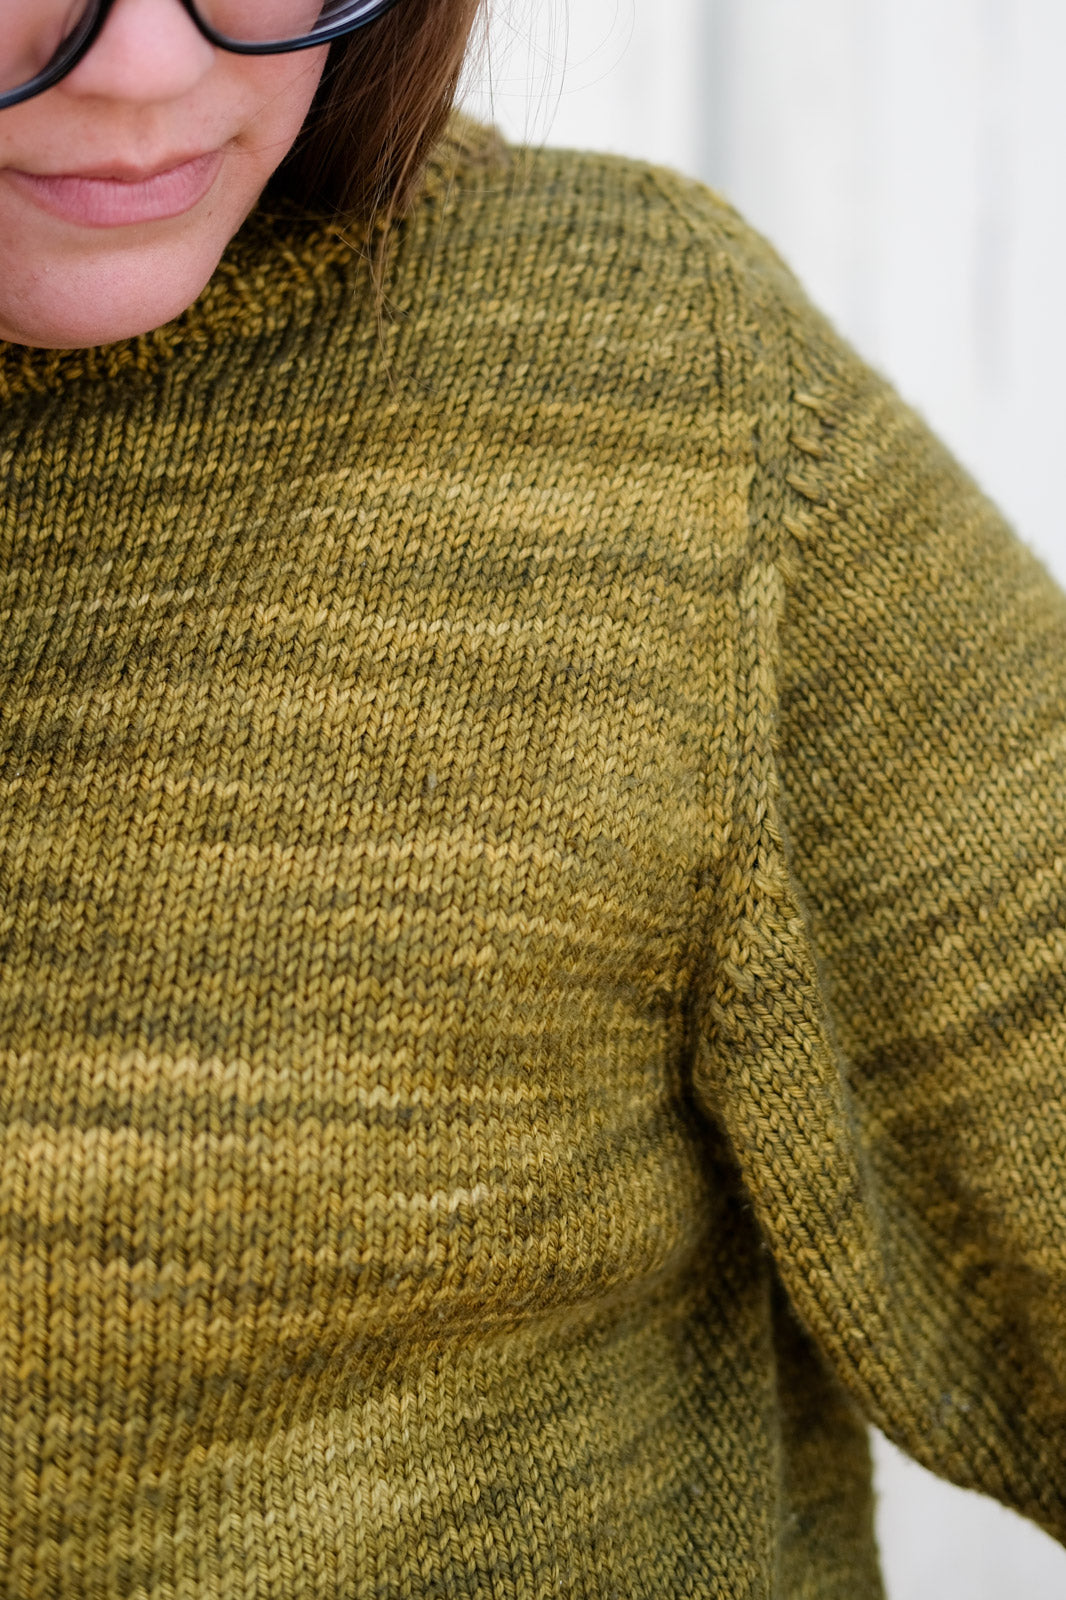 Ample Armhole on the Cline Sweater